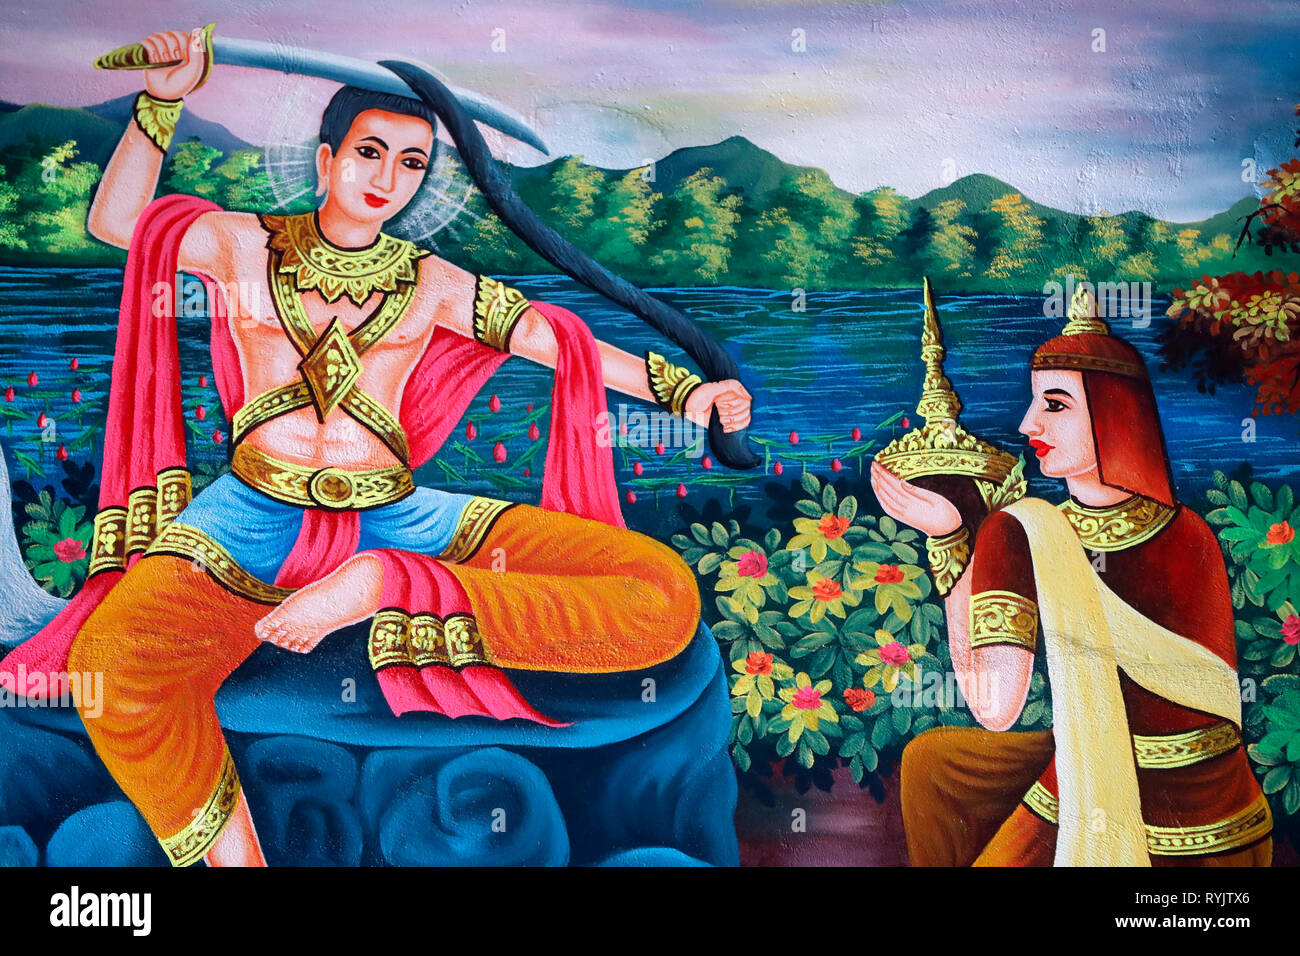 The Life of the Buddha, Siddhartha Gautama.  Prince Siddhartha cut off his hair to renounce the worldly life at the bank of the Anoma River.  Soc Po L - Stock Image